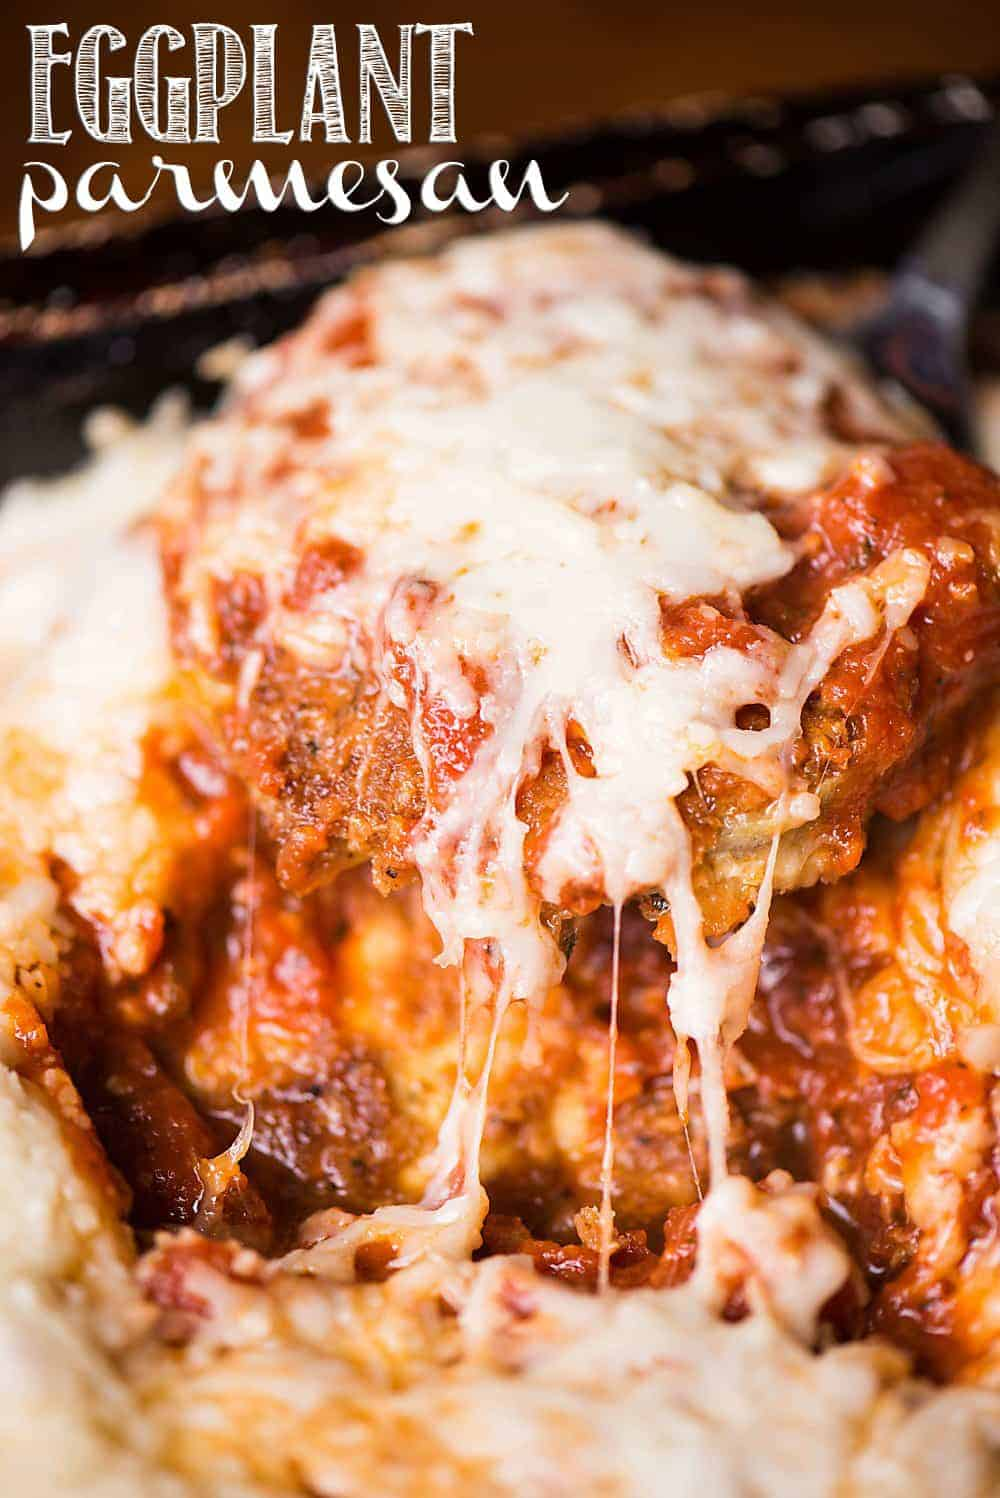 Homemade baked Eggplant Parmesan recipe with lots of cheese.